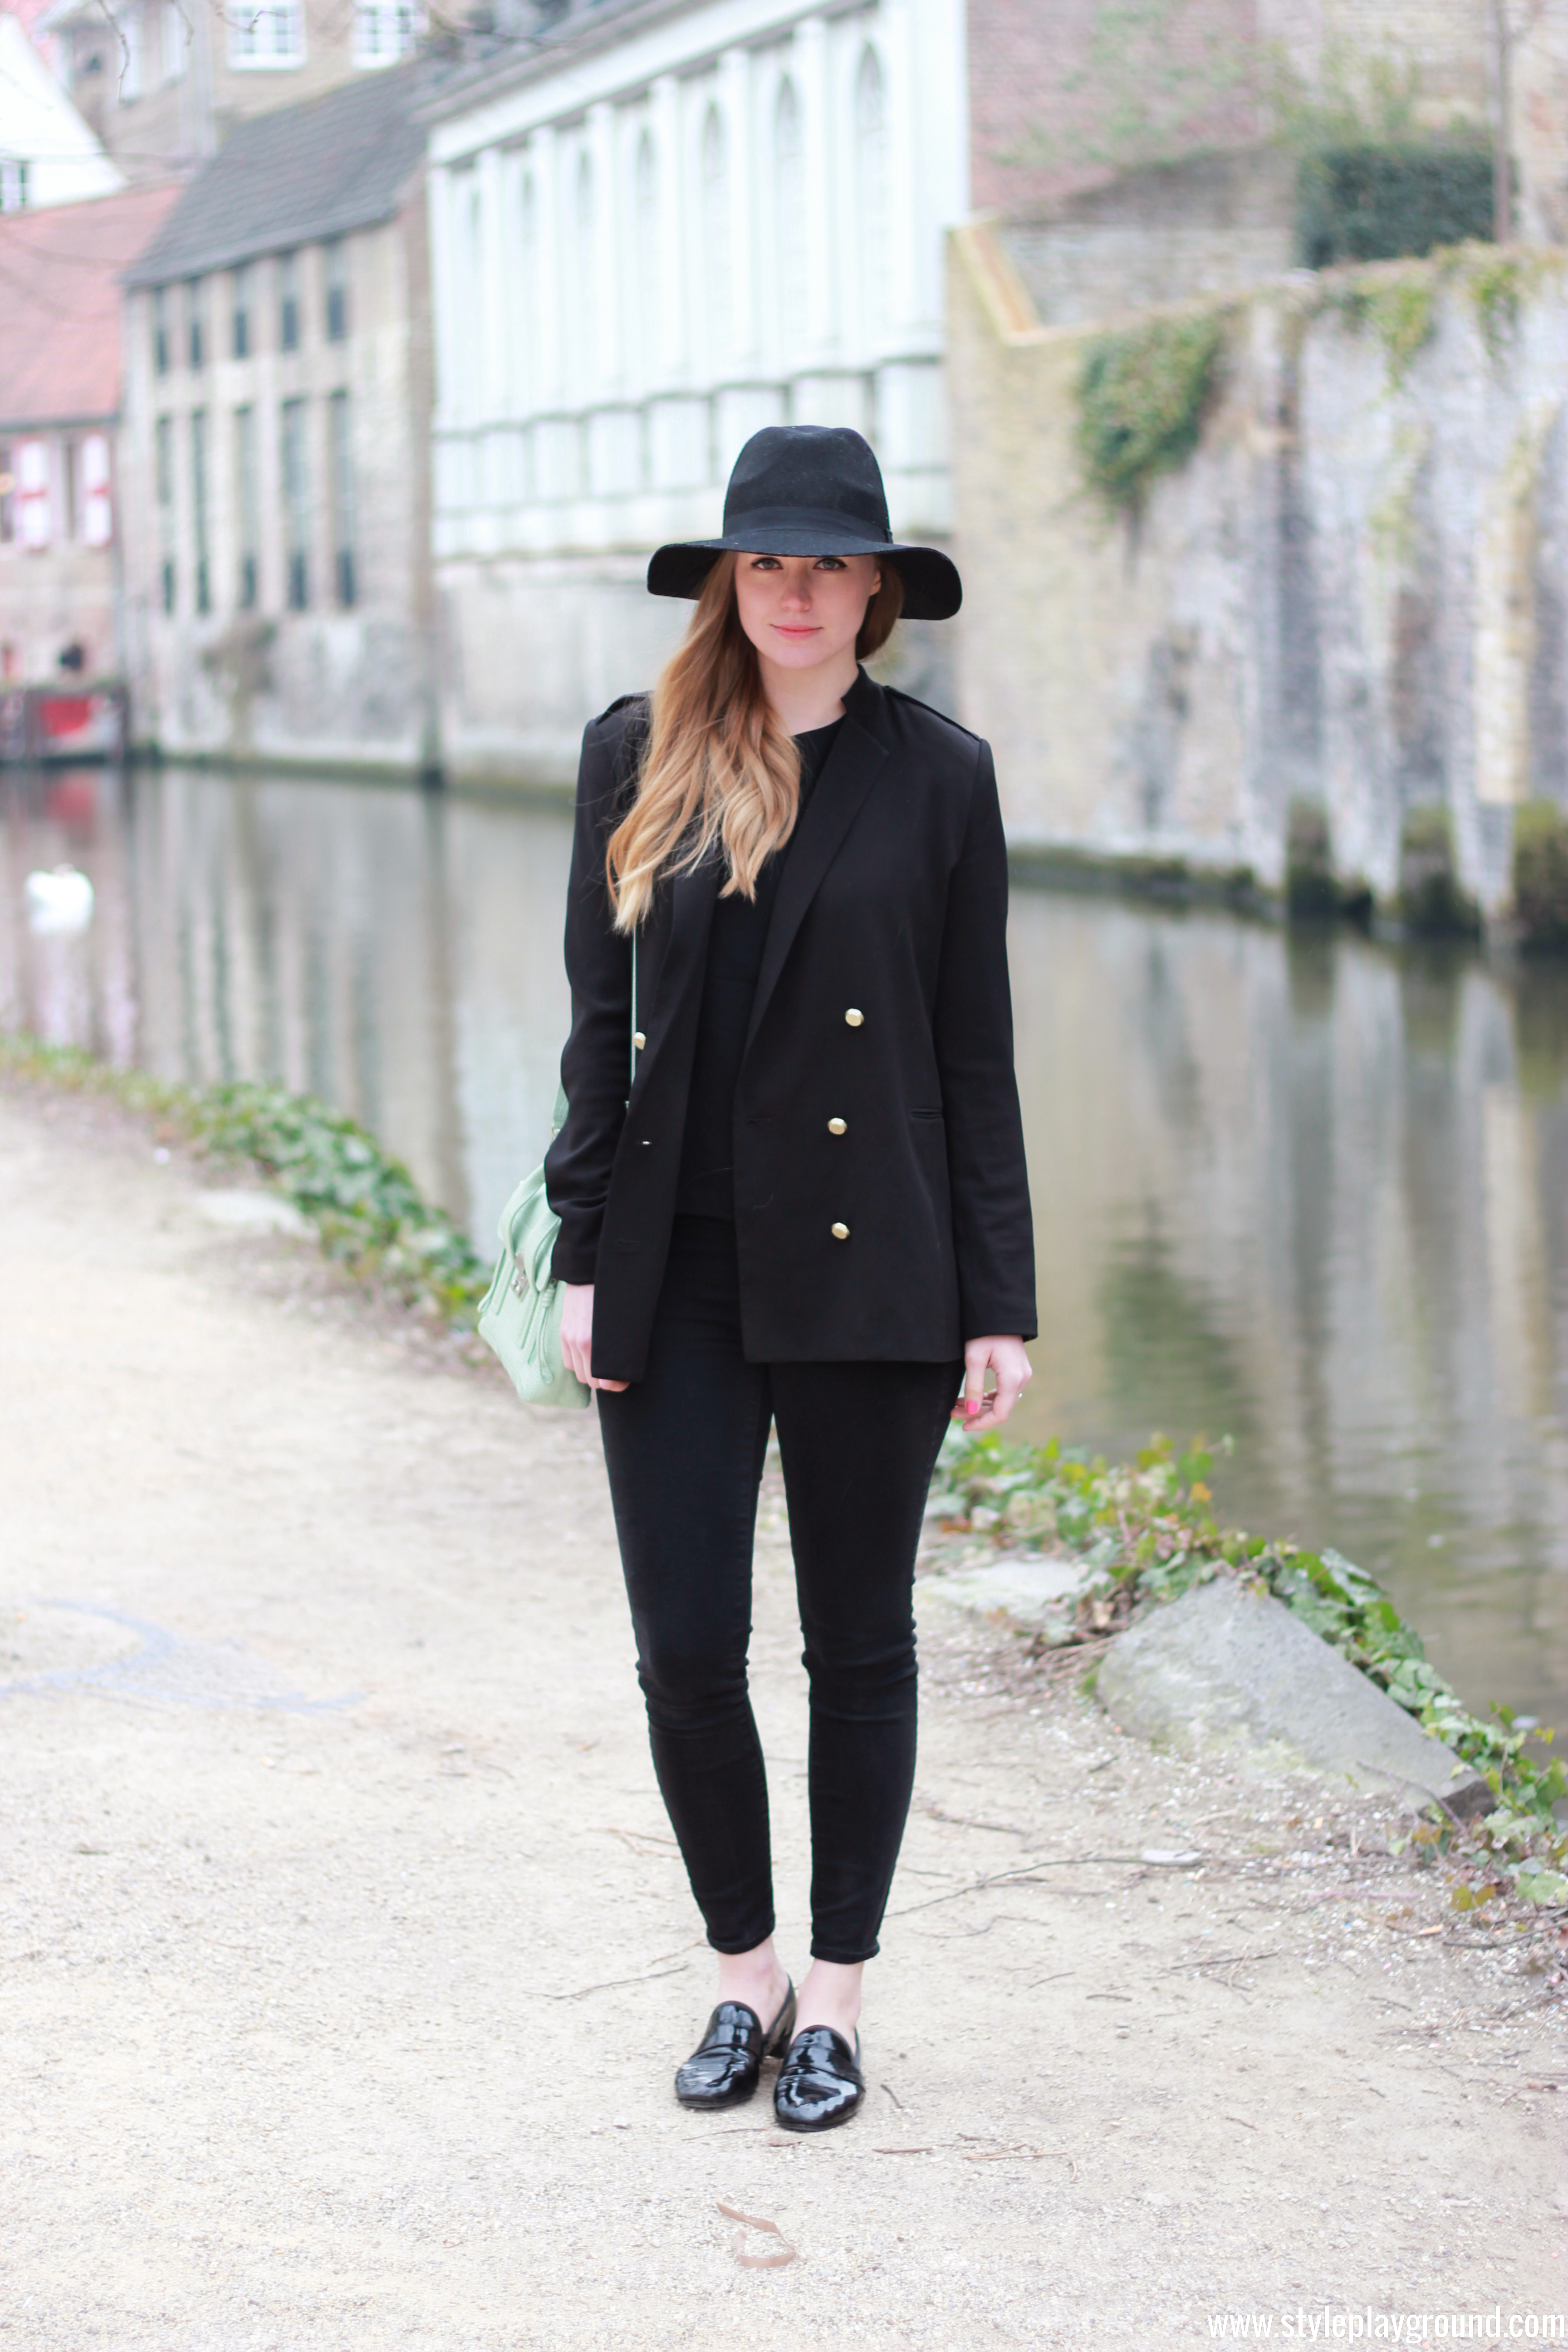 Axelle Blanpain of Style playground is wearing an H&M blazer & hat, Mango jumper, J Brand jeans, Repetto loafers & 3.1 Phillip Lim bag